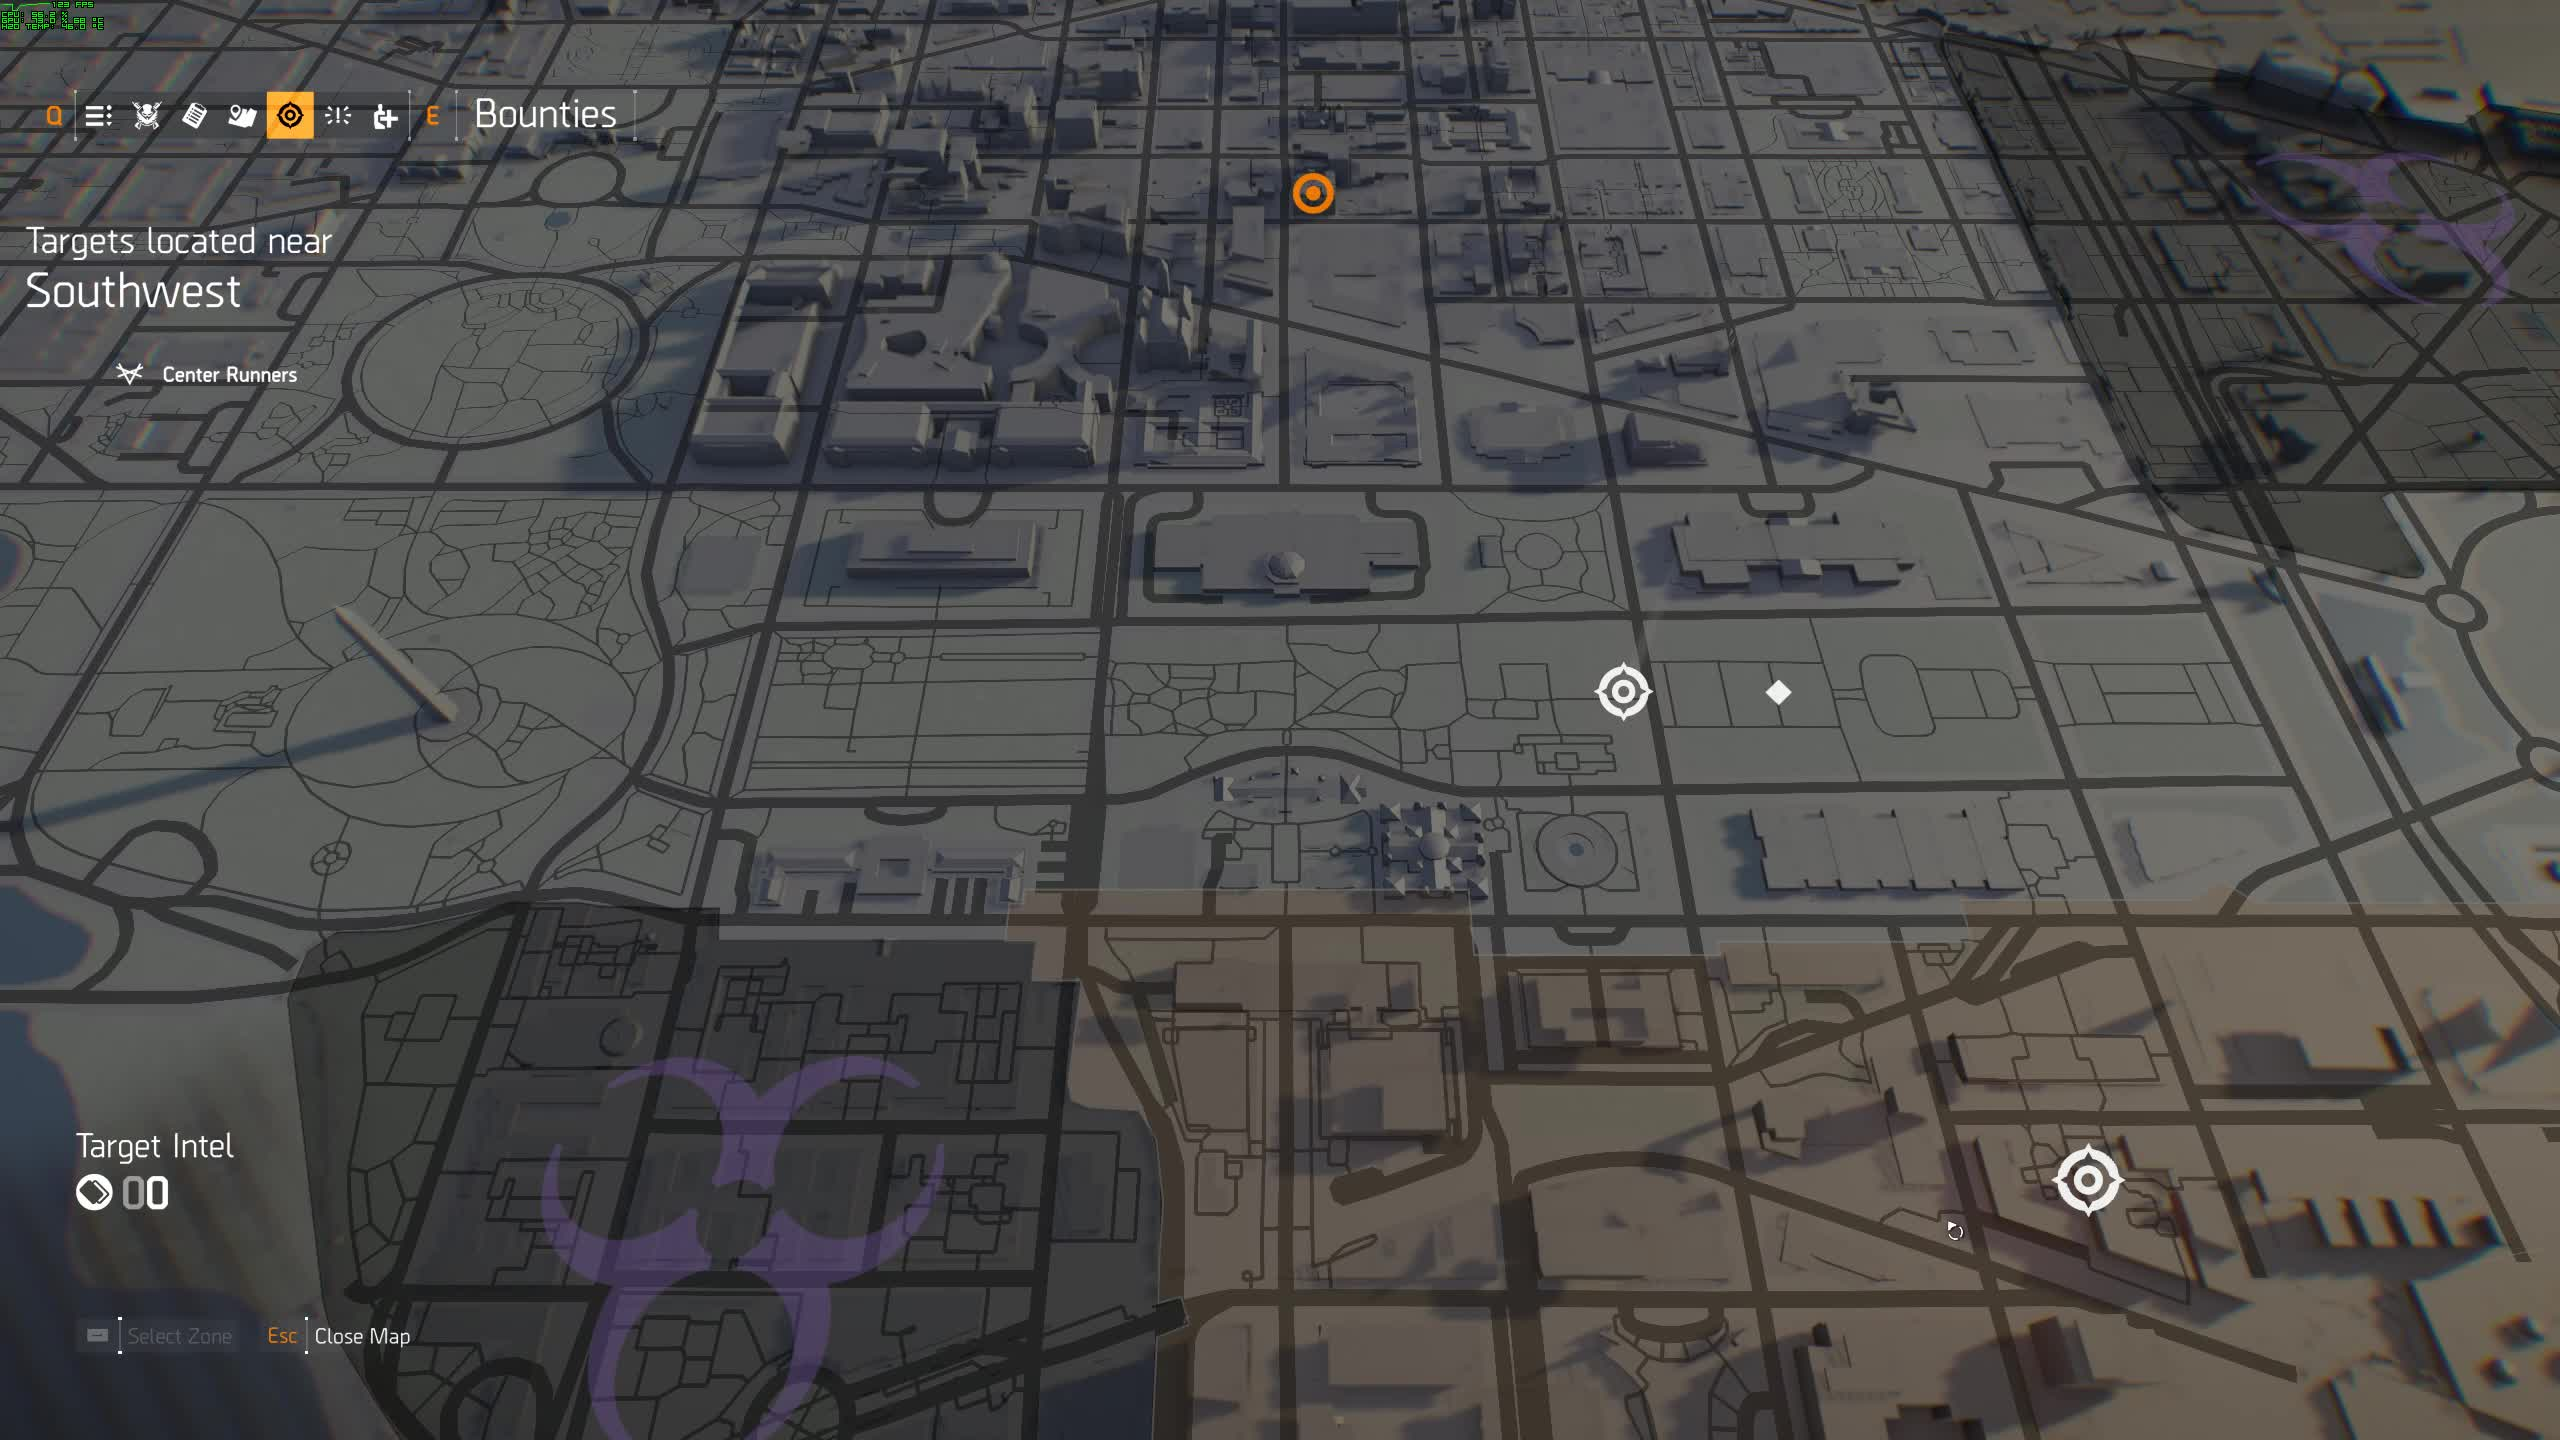 60fpsgaminggifs, tomclancysthedivision2, [The Division 2] Bounty just stretching GIFs